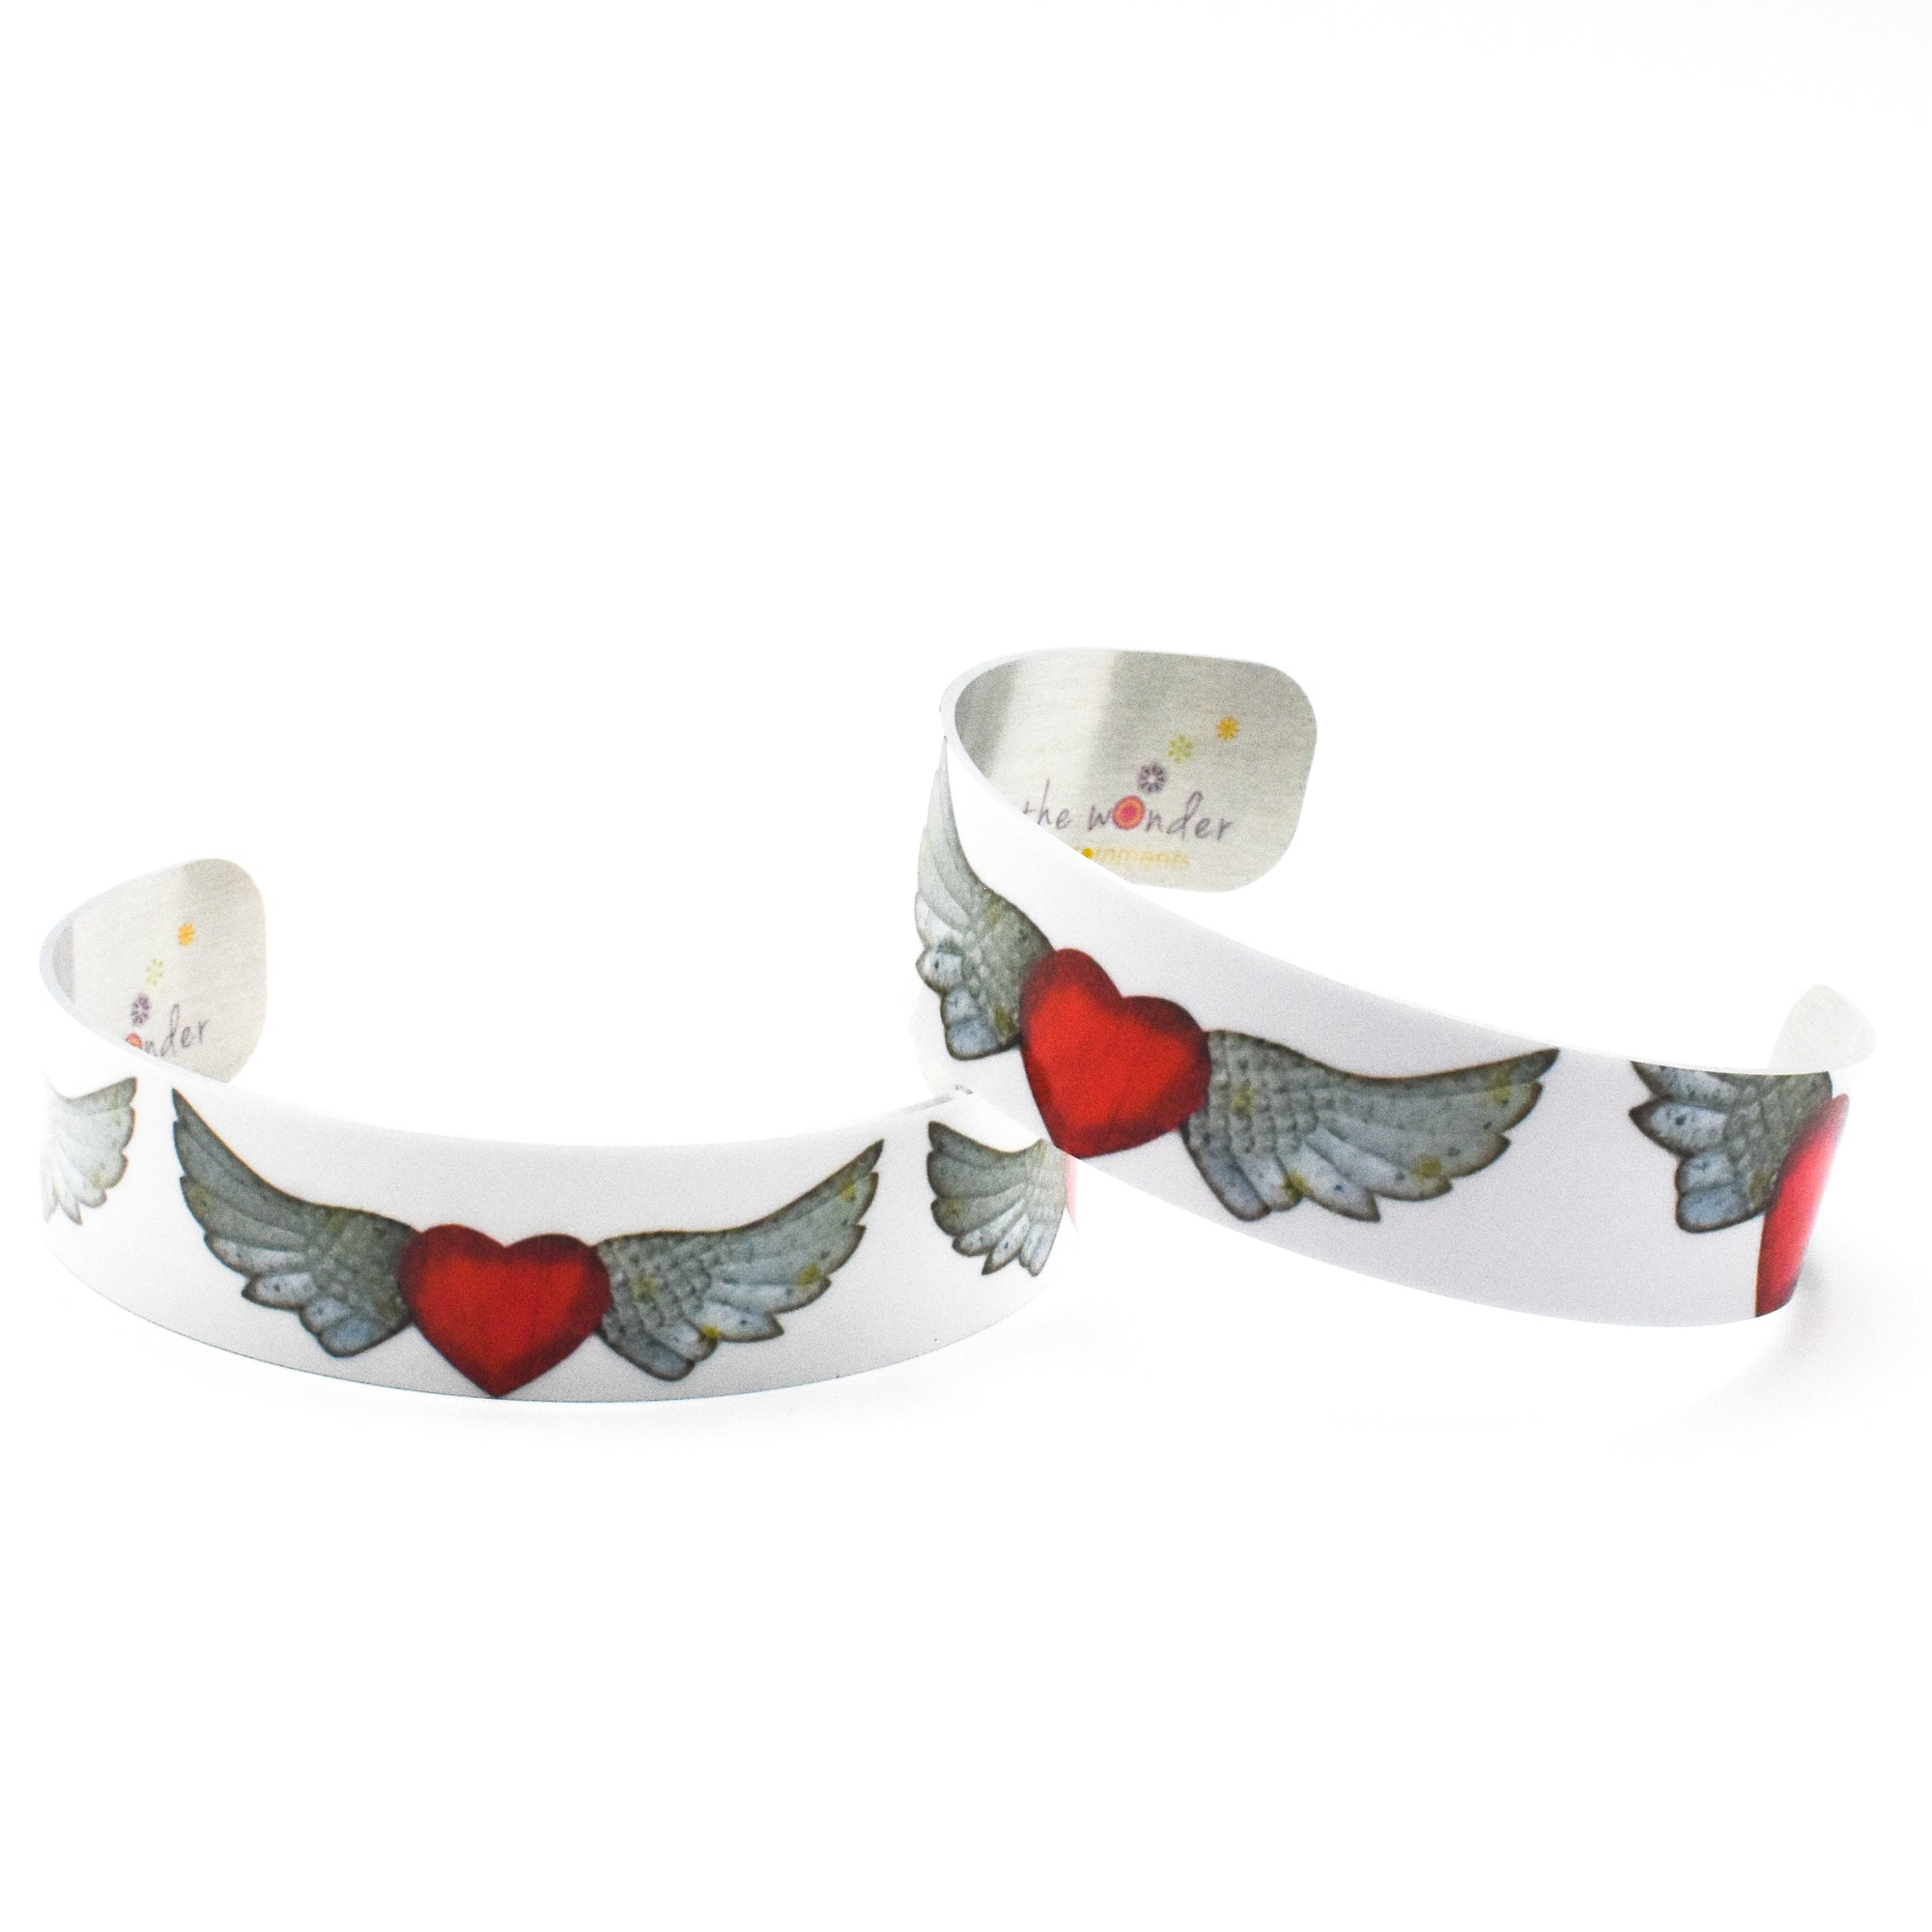 Standard view of both Angel Wings Bracelets | Wear the Wonder